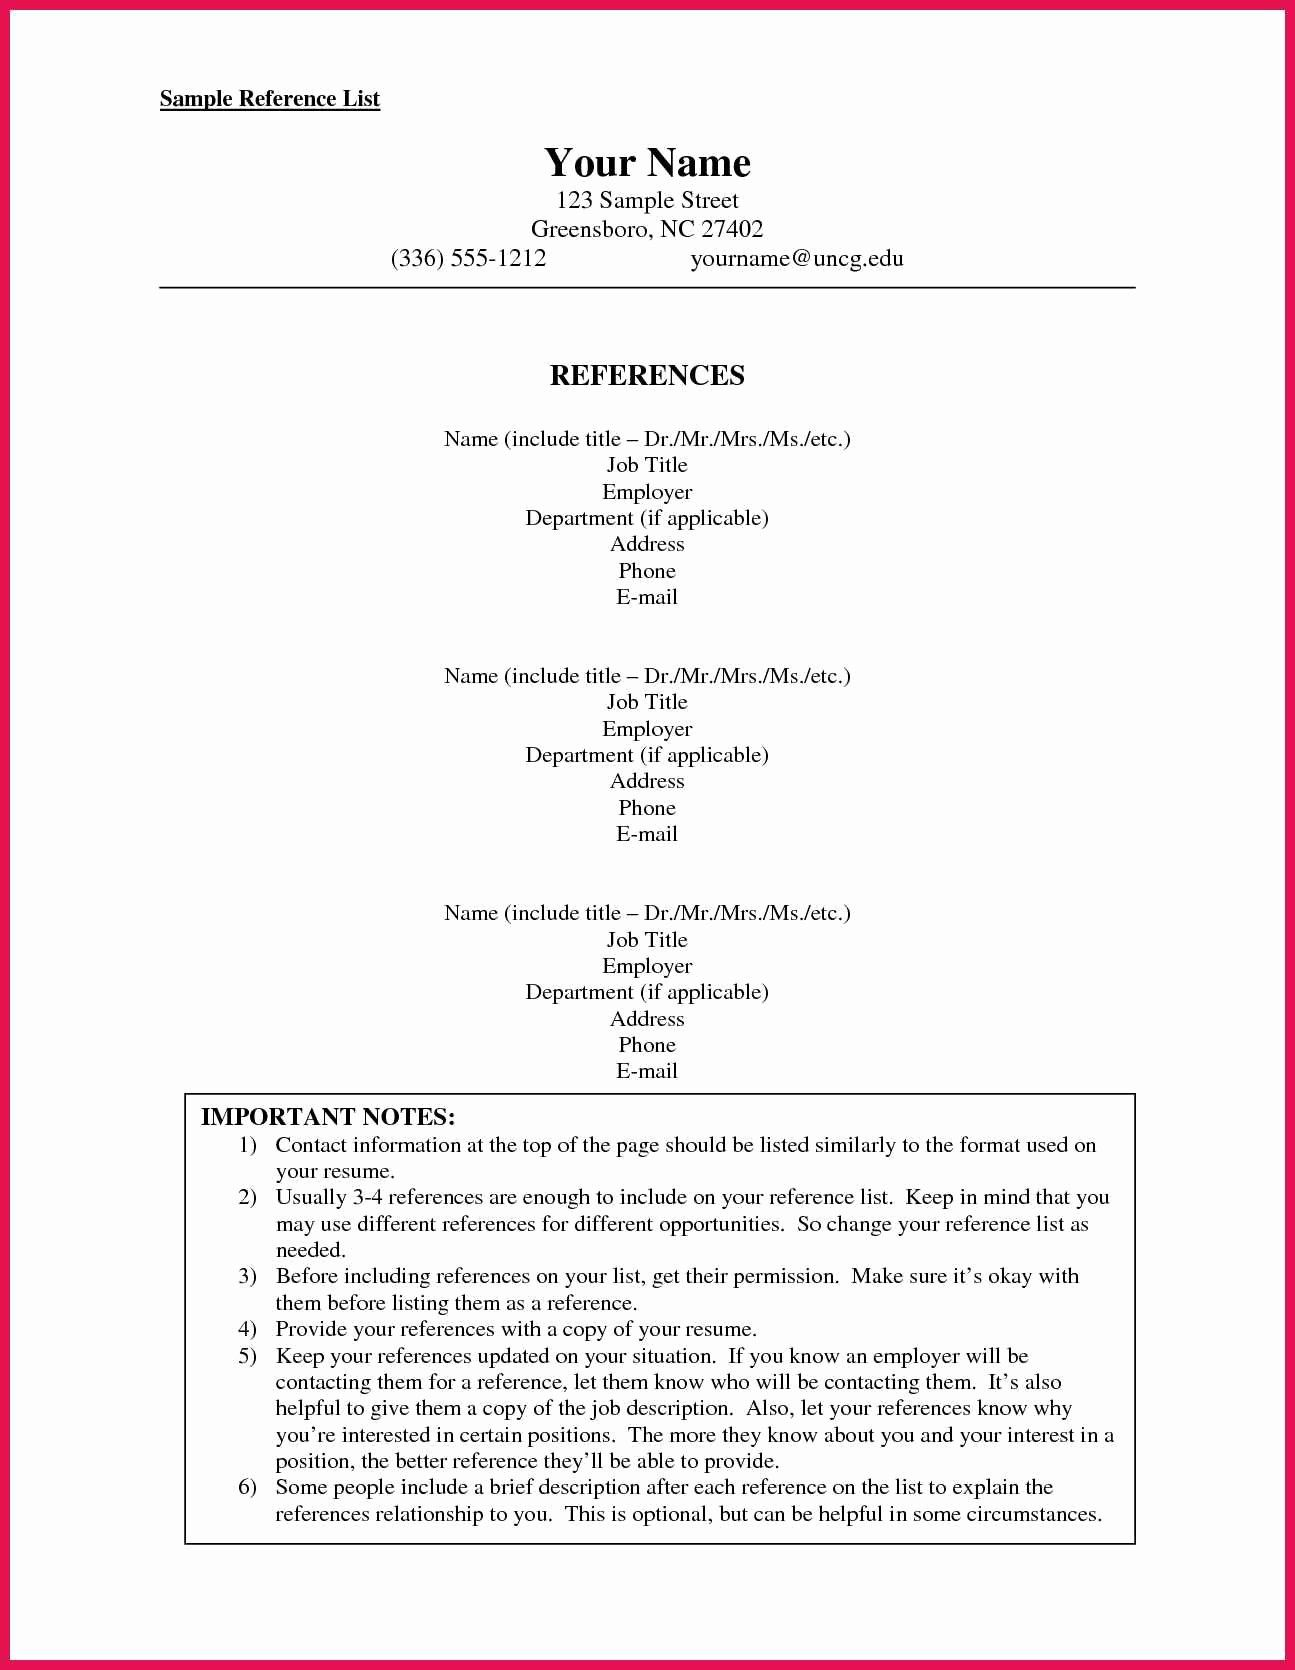 Resume References Format Beautiful How To Format A Reference List